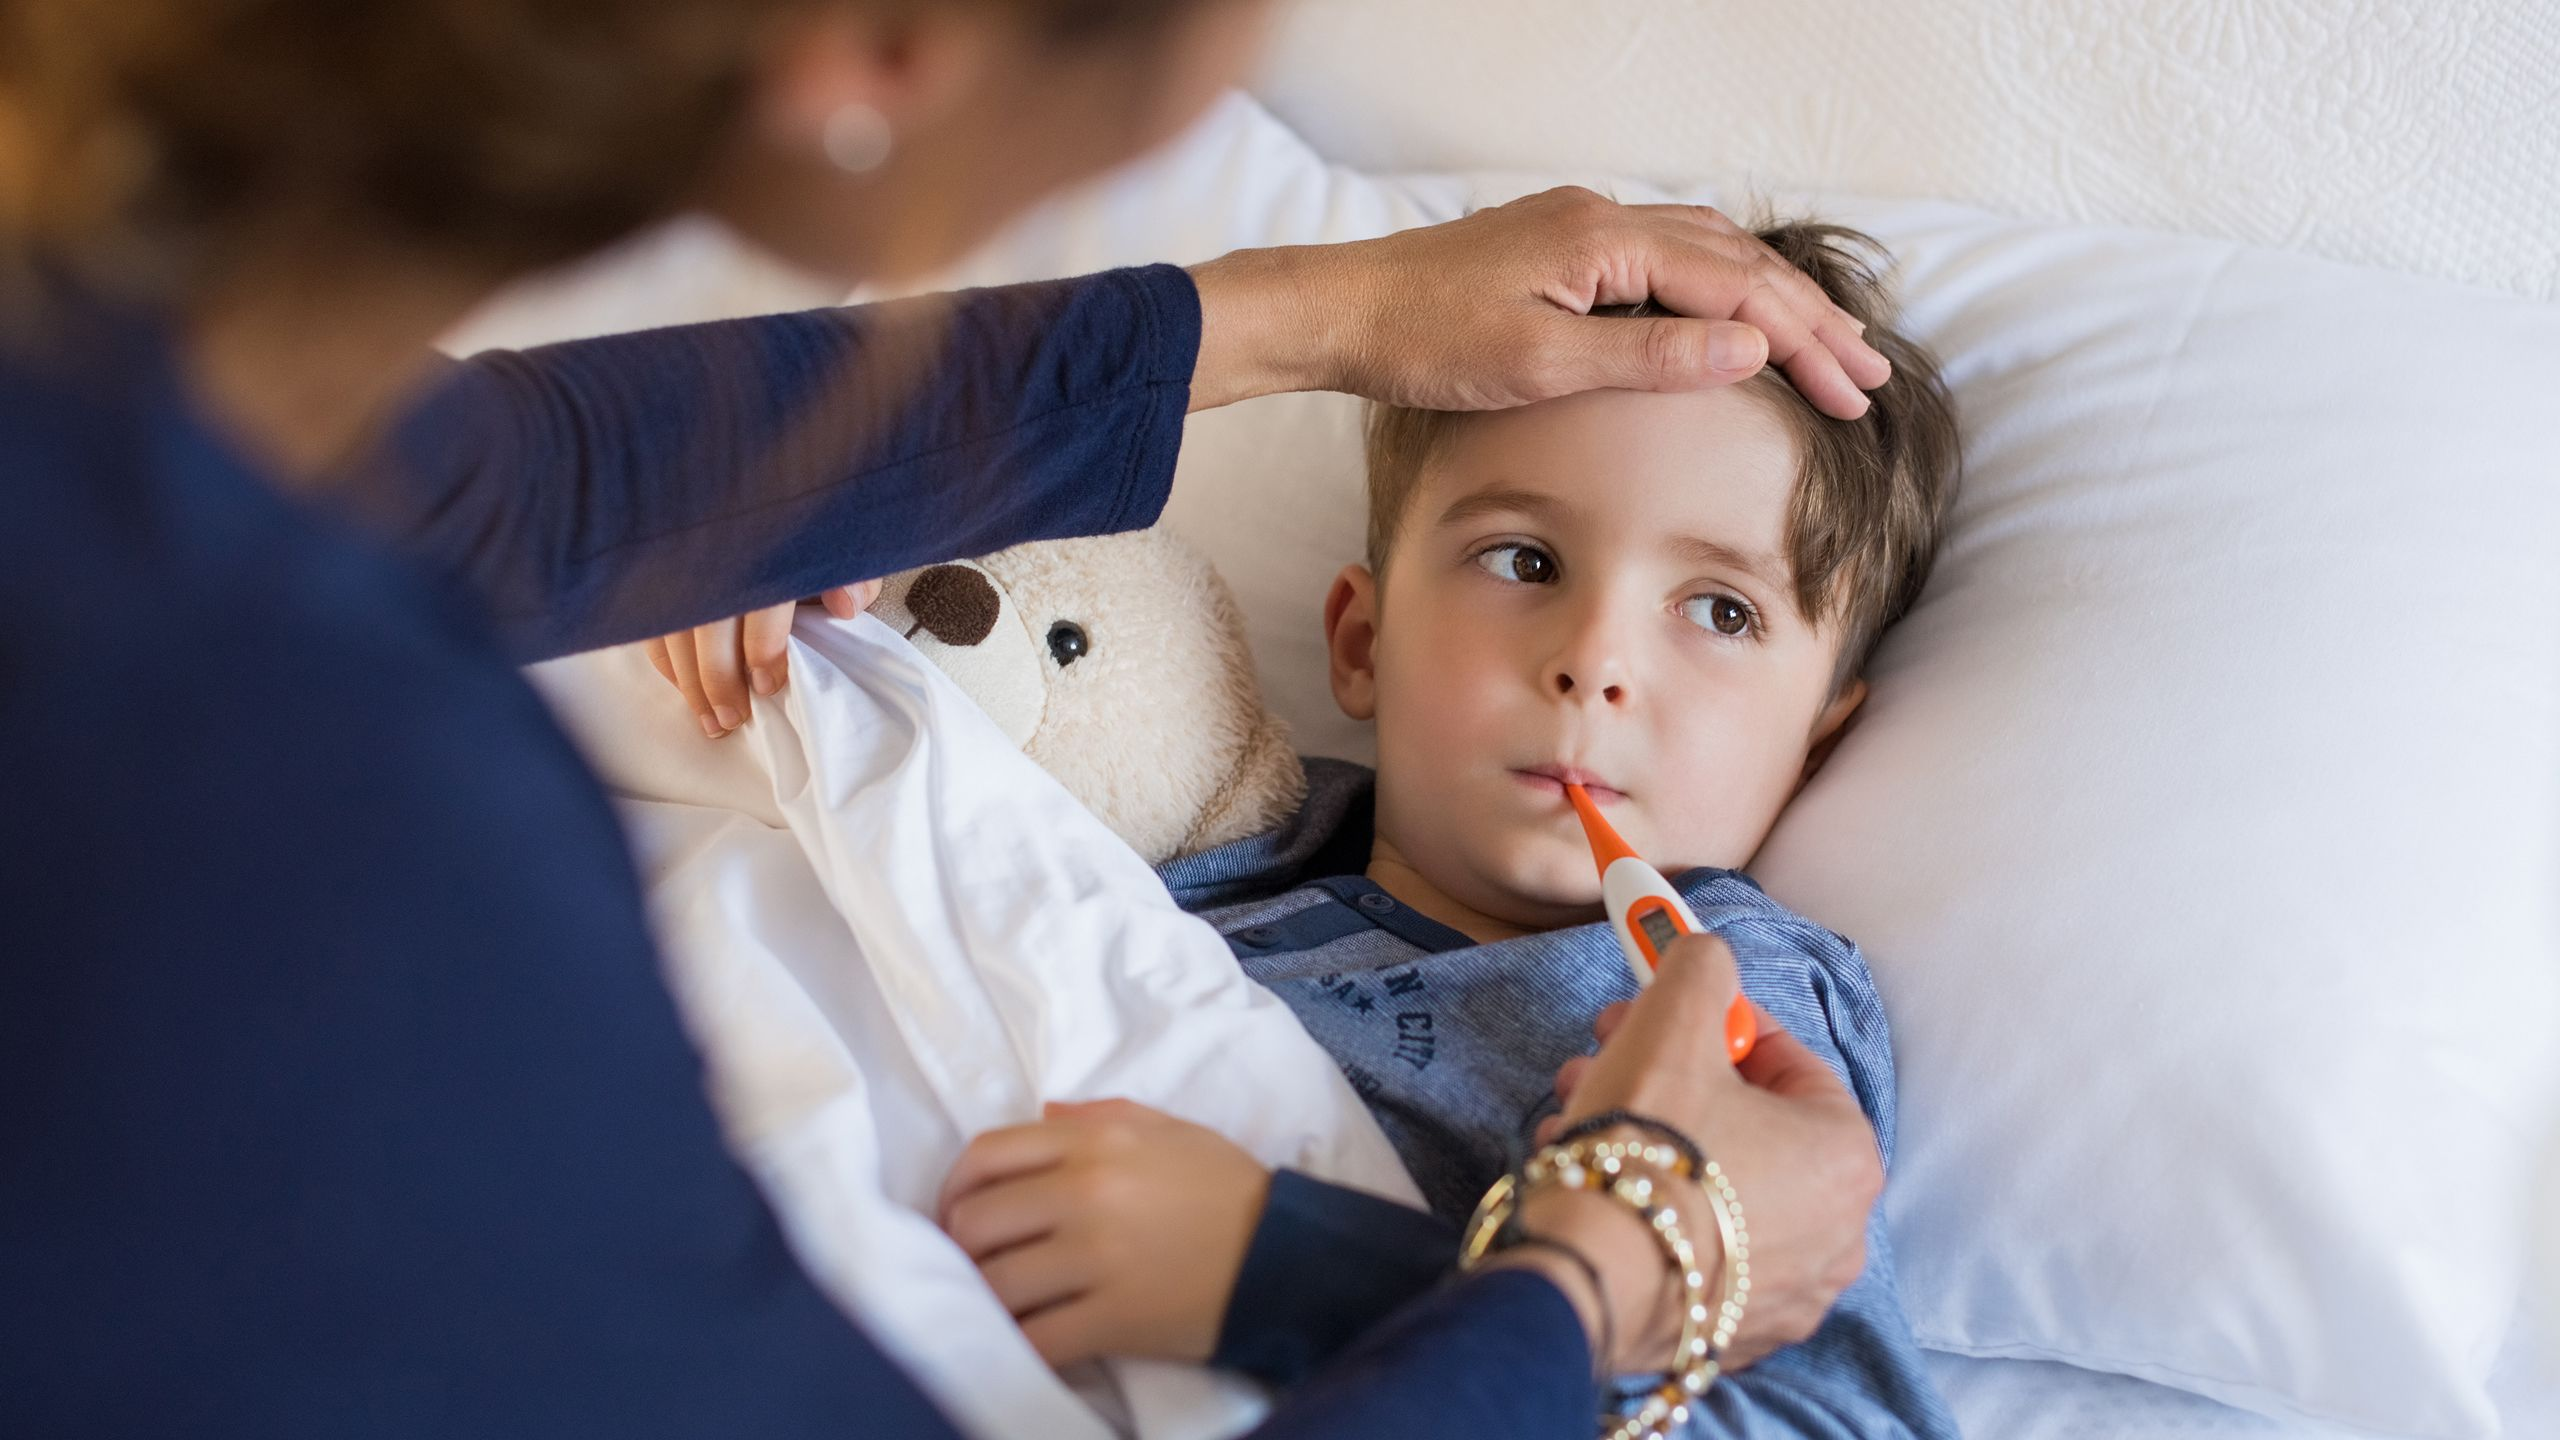 6 Signs Your Child Should Go to the ER